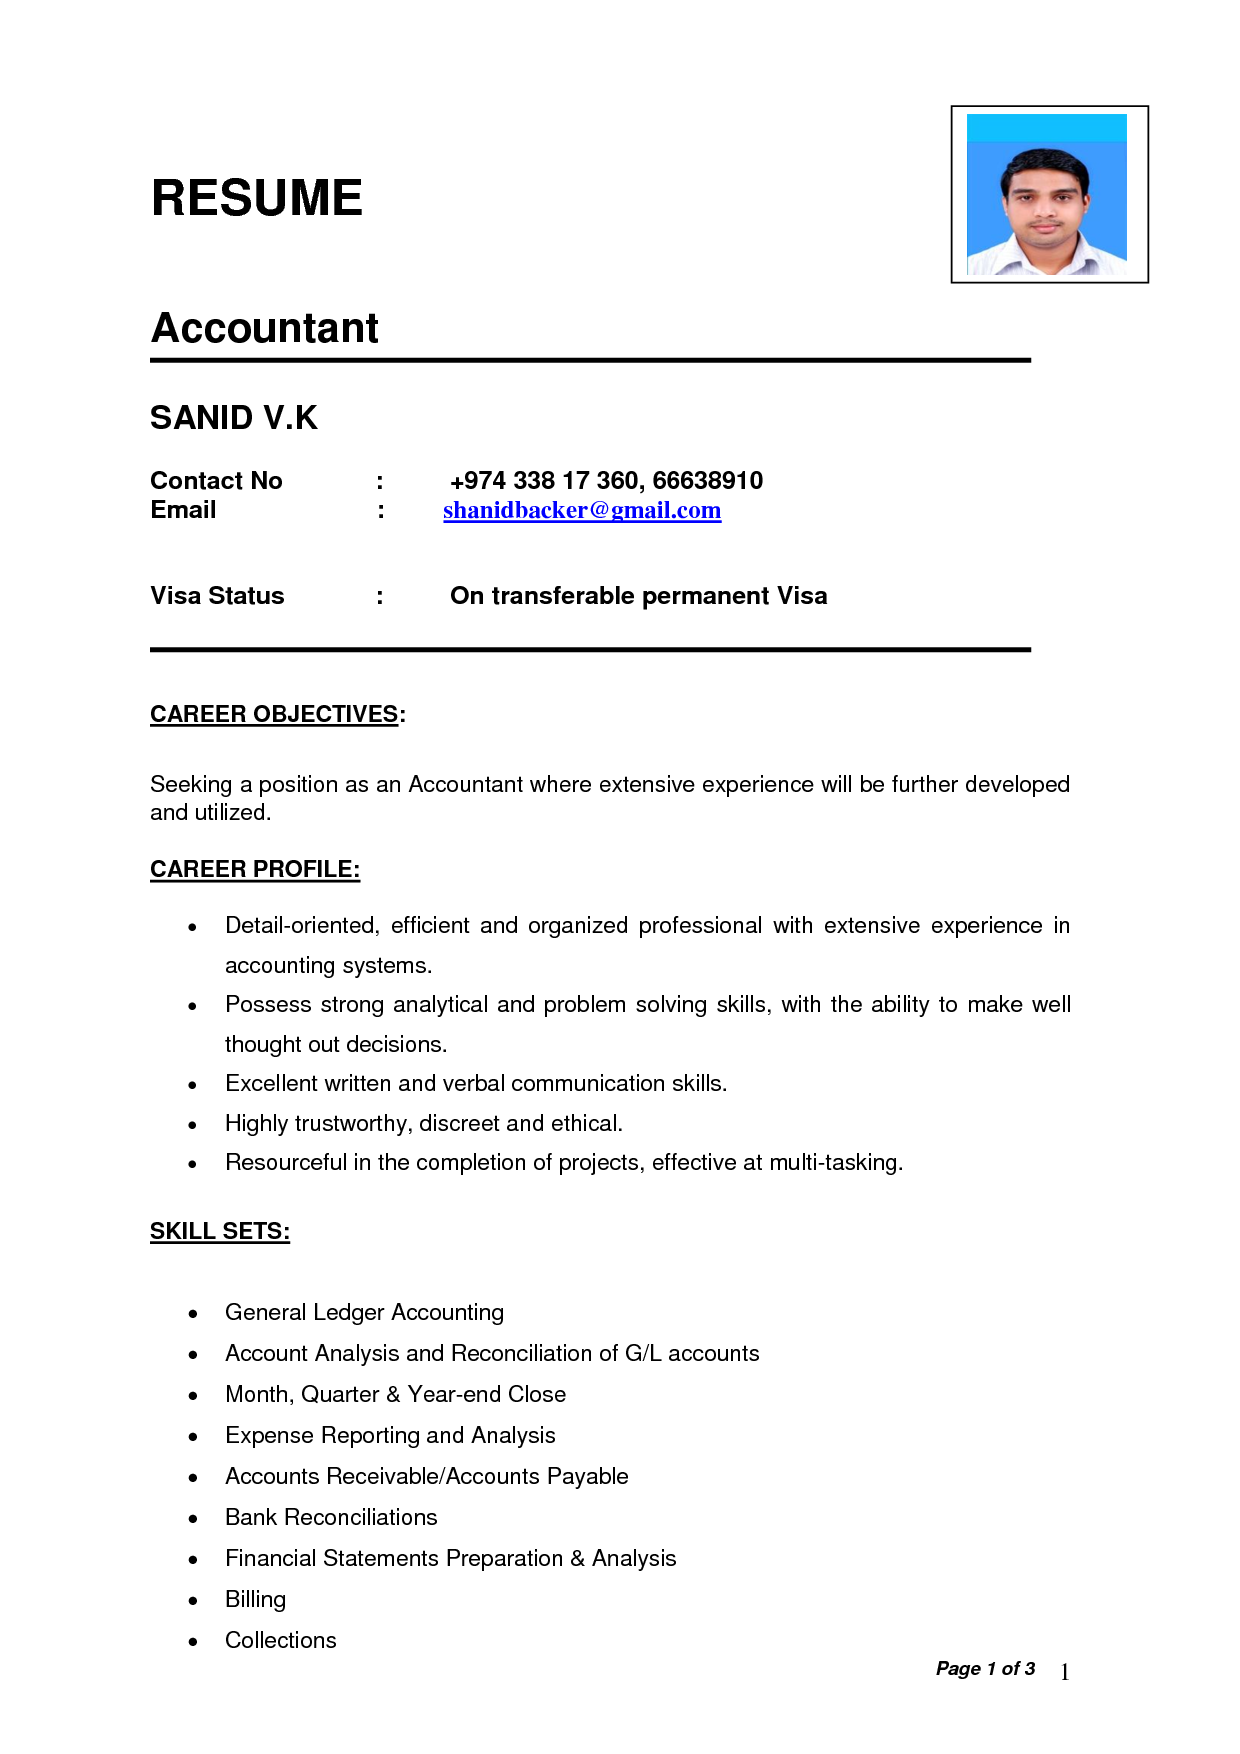 Resume Format India Format India Resume Resumeformat Accountant Resume Resume Template Word Best Resume Format